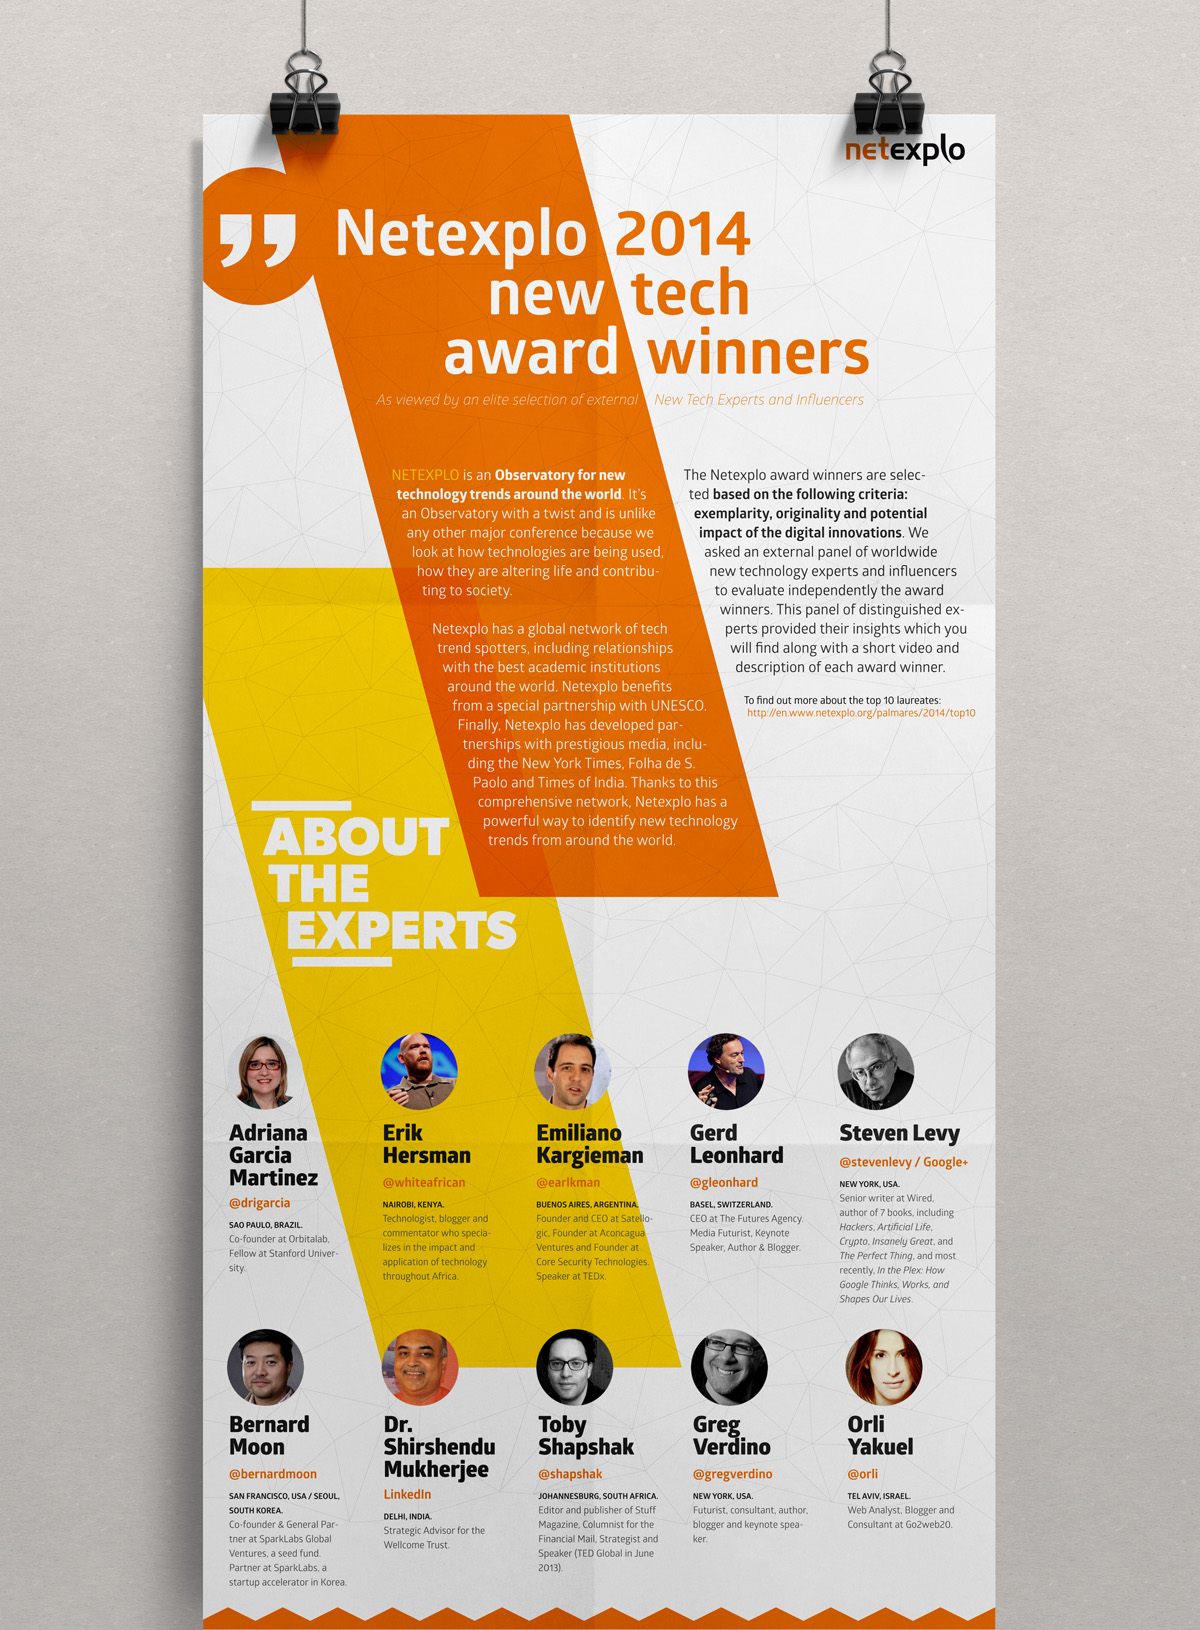 INTERACTIVE INFOGRAPHIC : NETEXPLO Created for Netexplo for the forum at the Unesco.